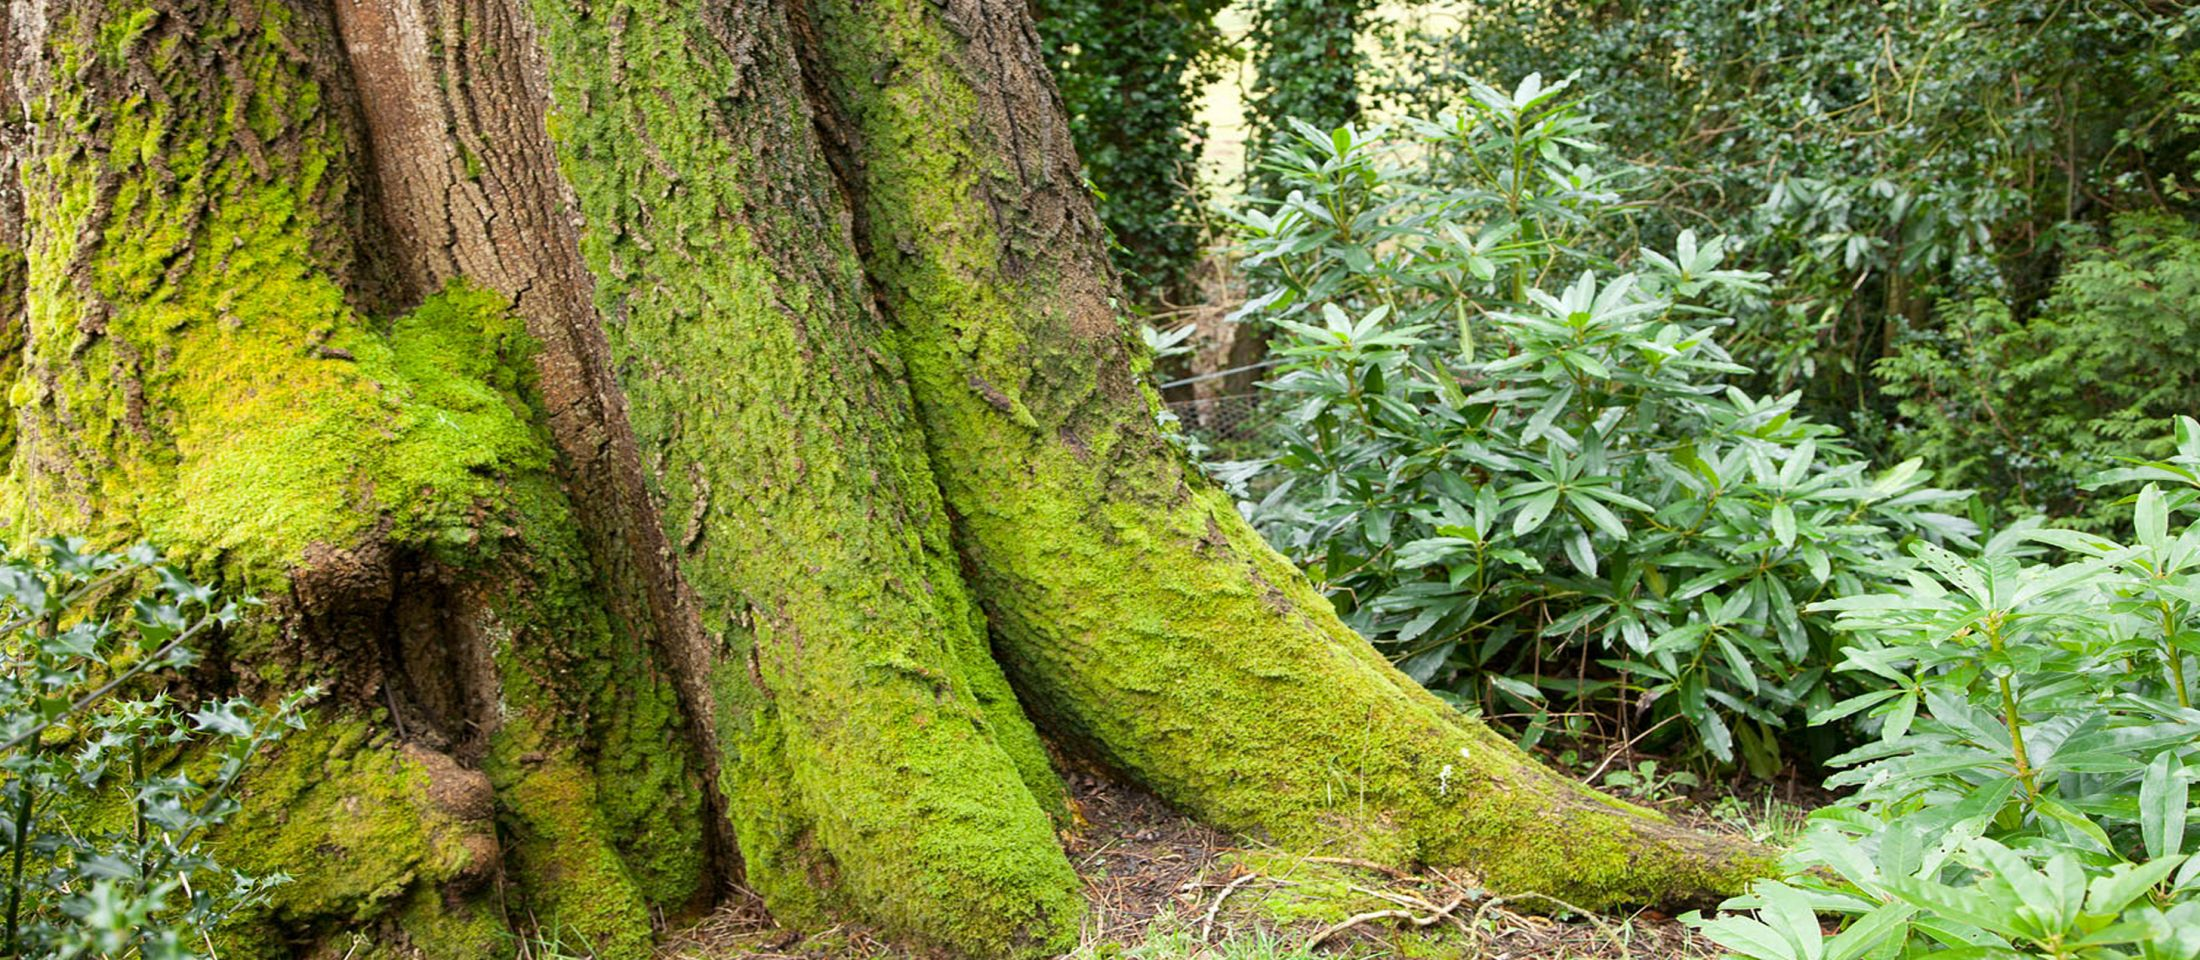 Ash tree in Scotney Castle gardens, Kent. Photo: John Miller.